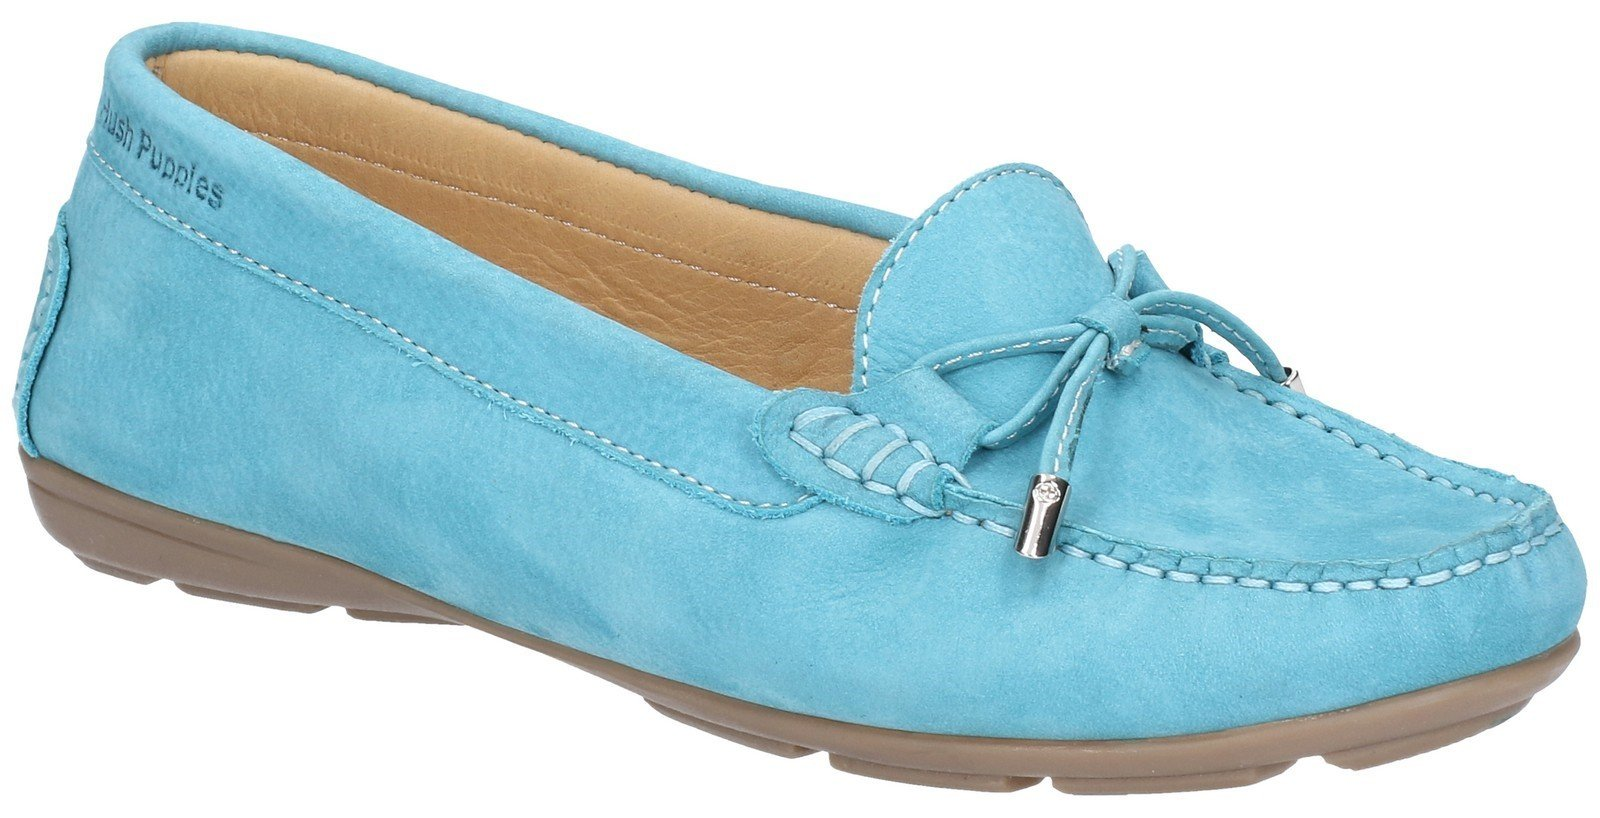 Hush Puppies Women's Maggie Slip On Loafer Shoe Various Colours 28405 - Sky Blue 3